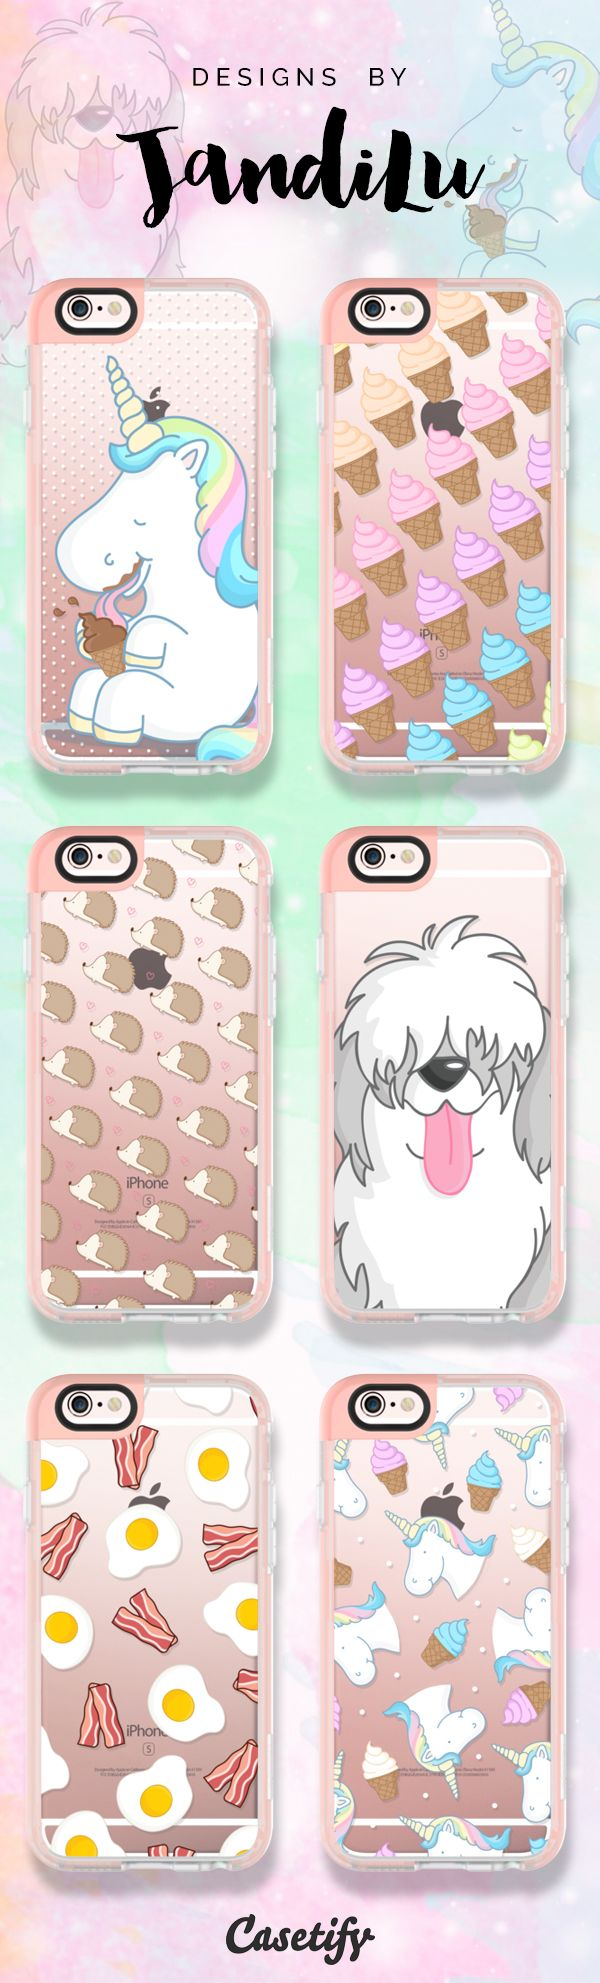 Click through to see more New Standard iPhone 6 case designs by JandiLu >>> https://www.casetify.com/jandilu/collection | @casetify